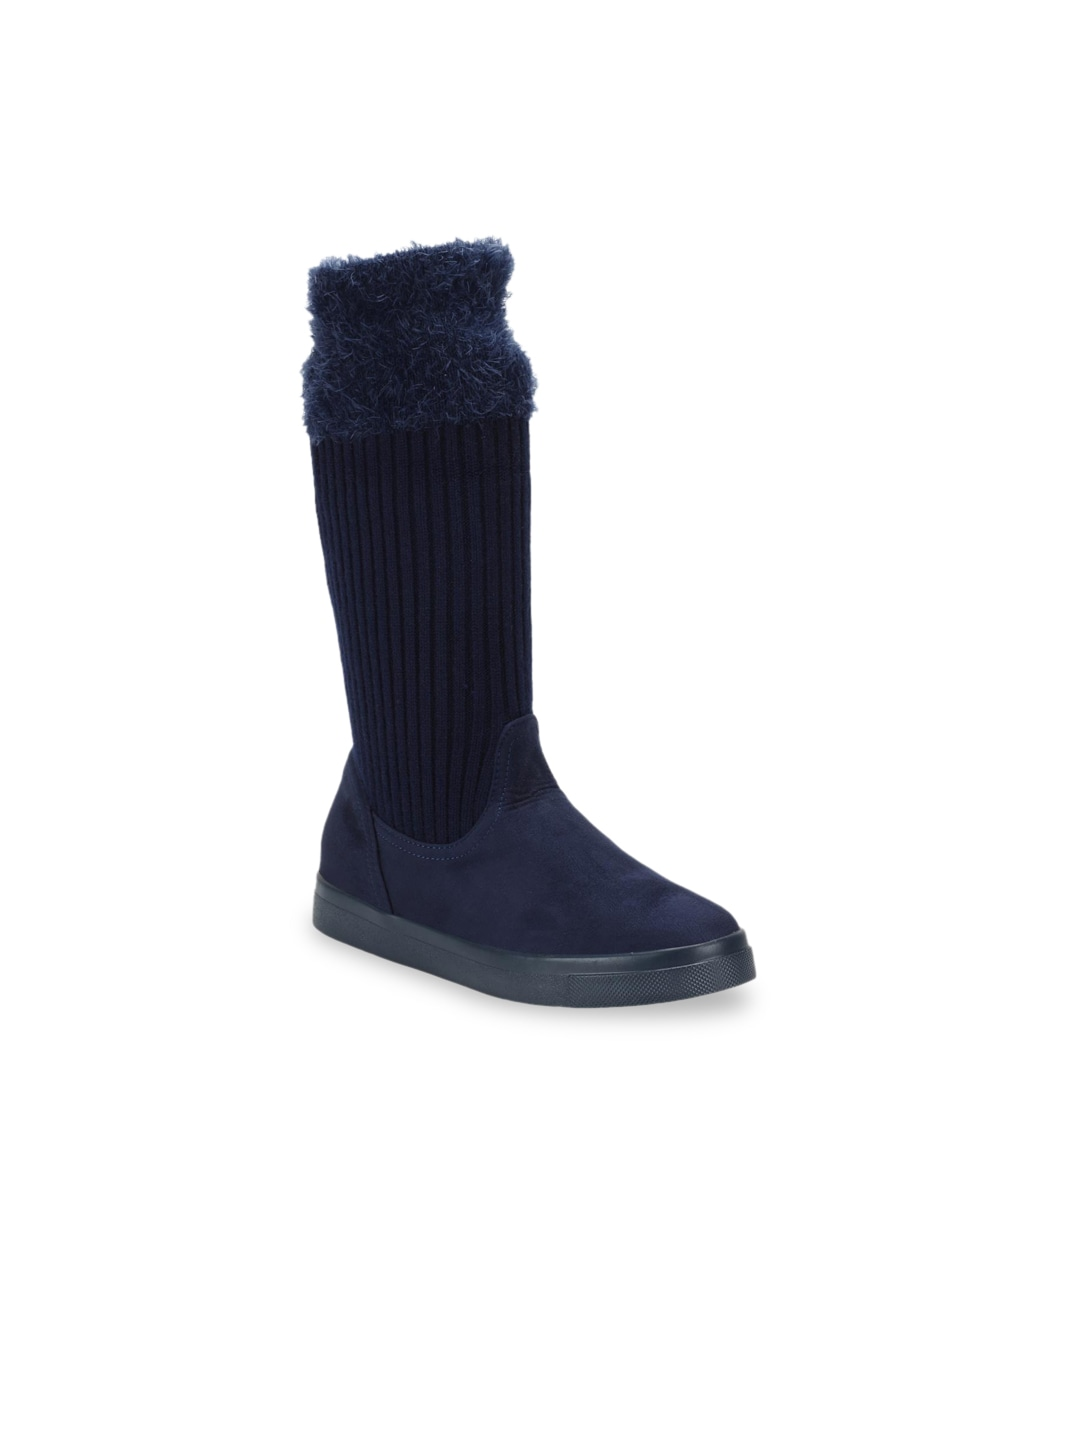 Navy Blue Woven Design Suede High-Top Flat Boots